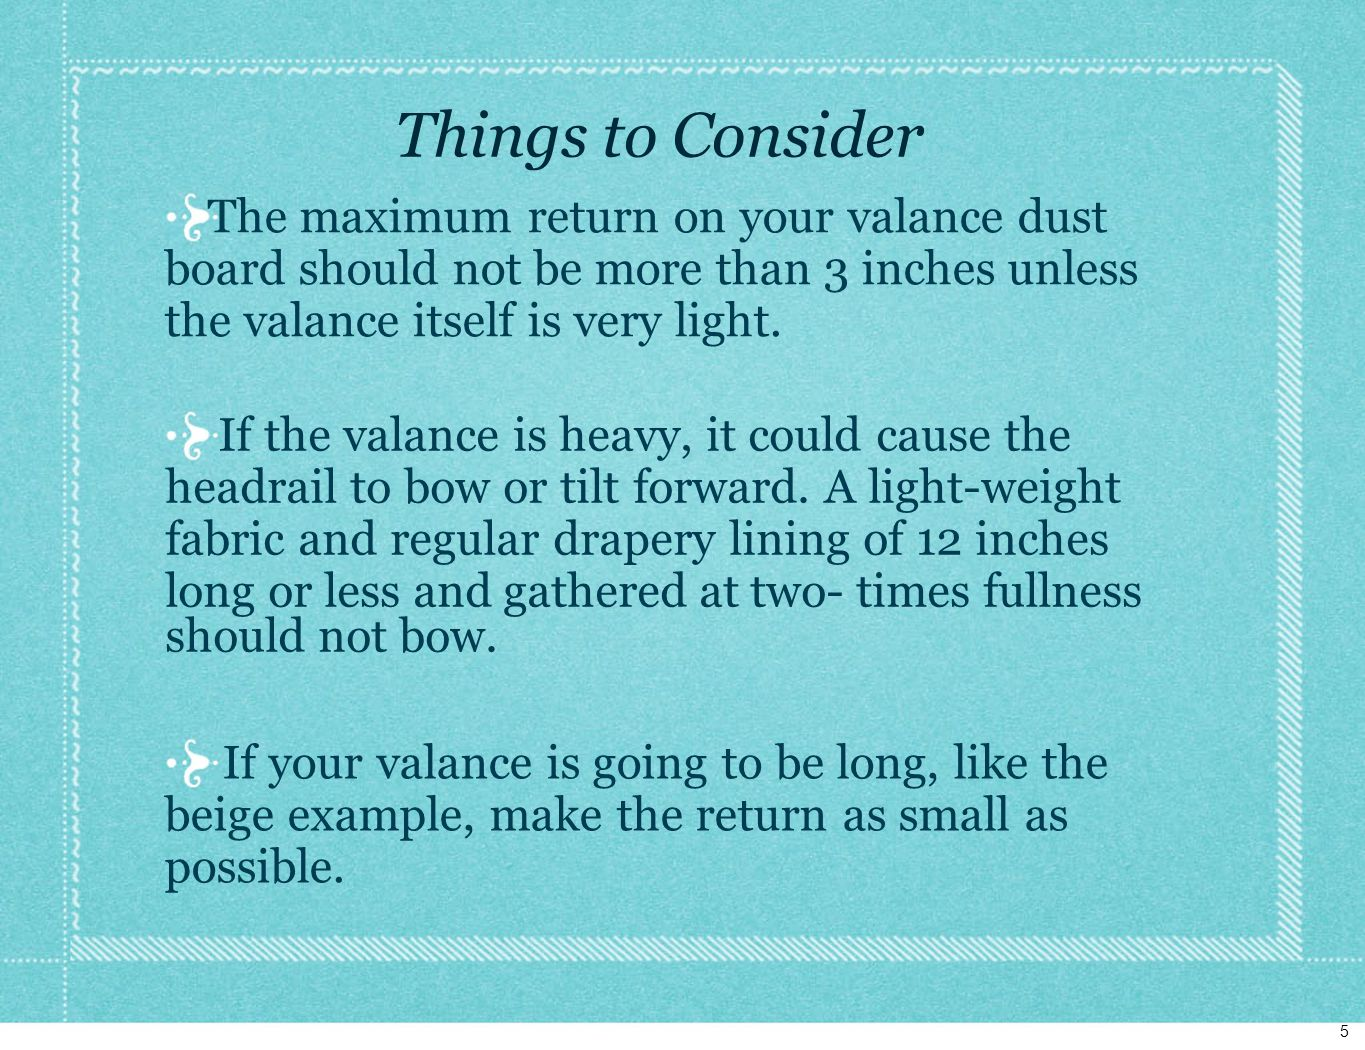 Things to Consider The maximum return on your valance dust board should not be more than 3 inches unless the valance itself is very light.